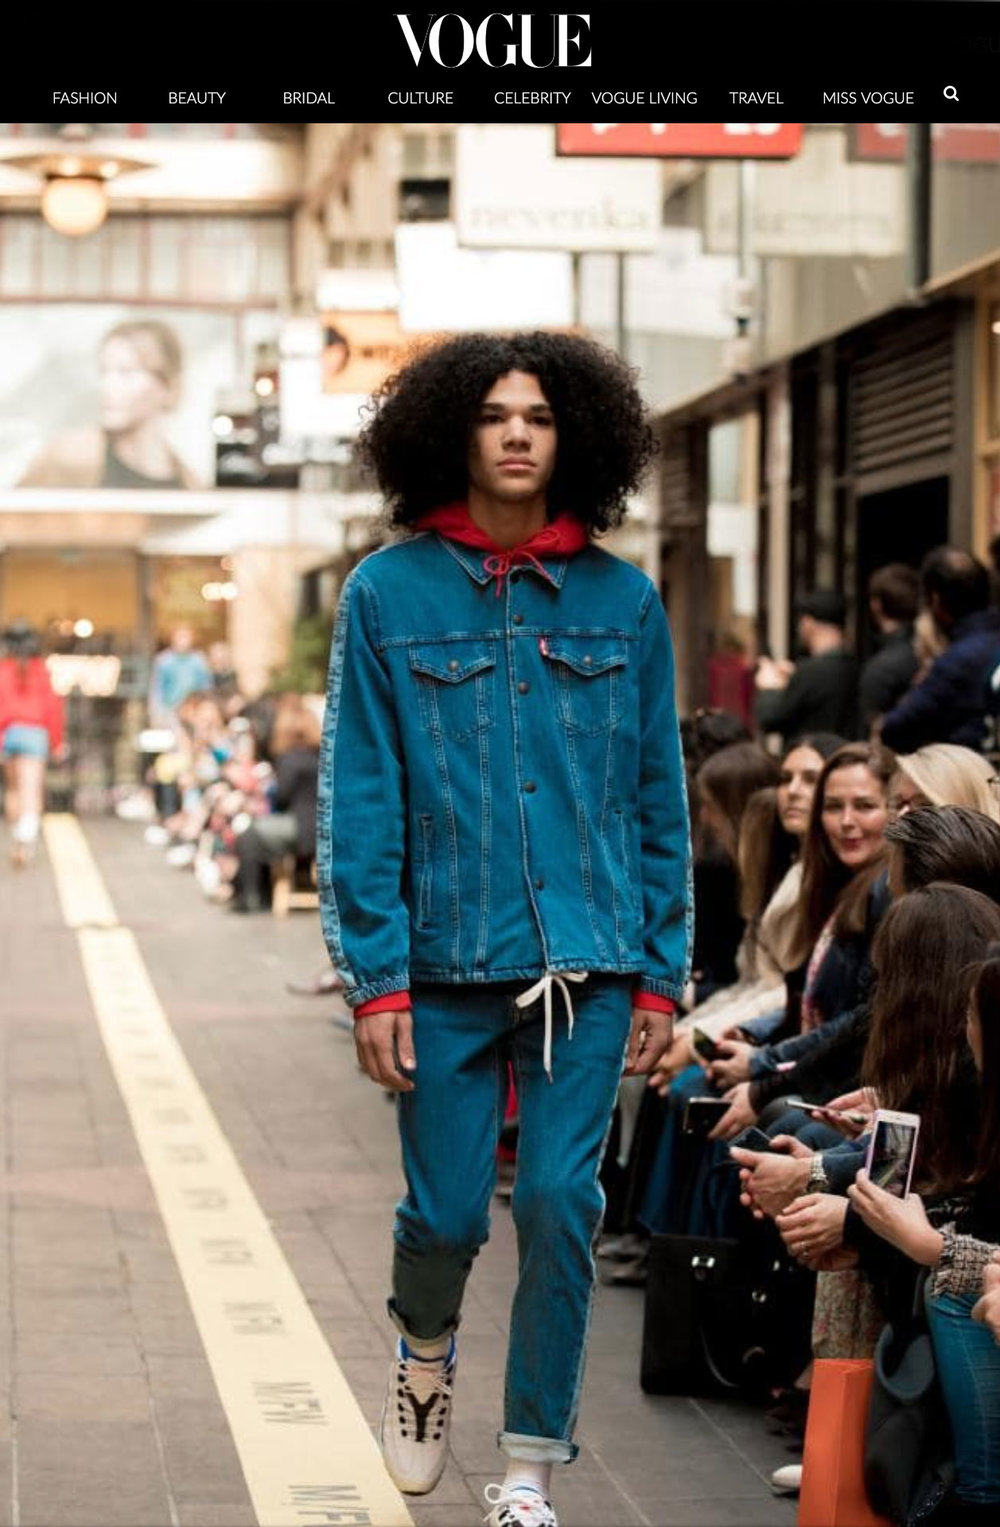 Dexter - MFW Street Runway 1 - Opening. View full Vogue article.